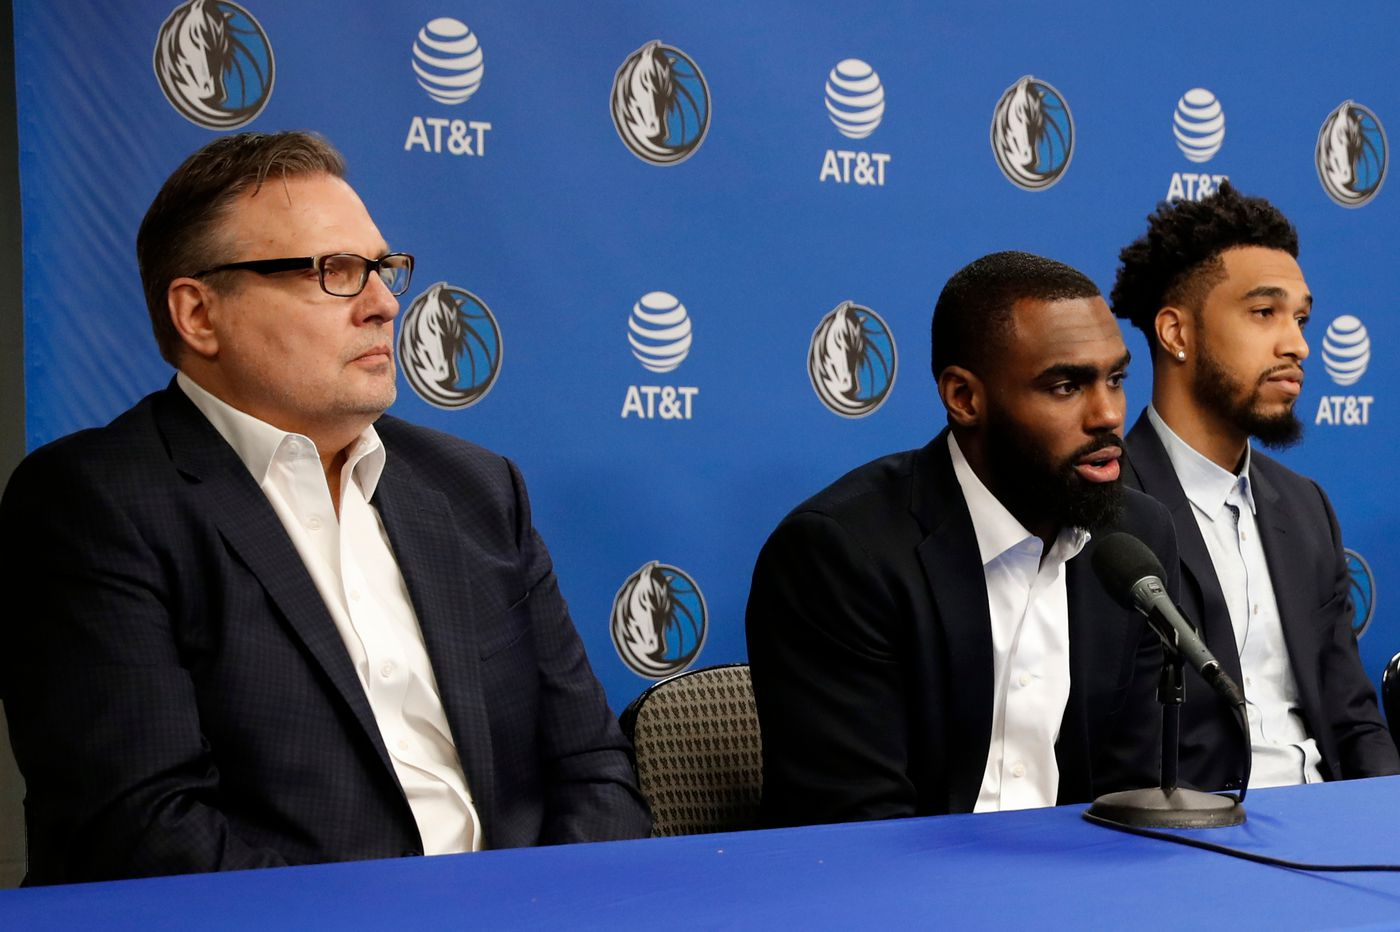 Sixers need to go hard after Mavericks executive Donnie Nelson | Keith Pompey